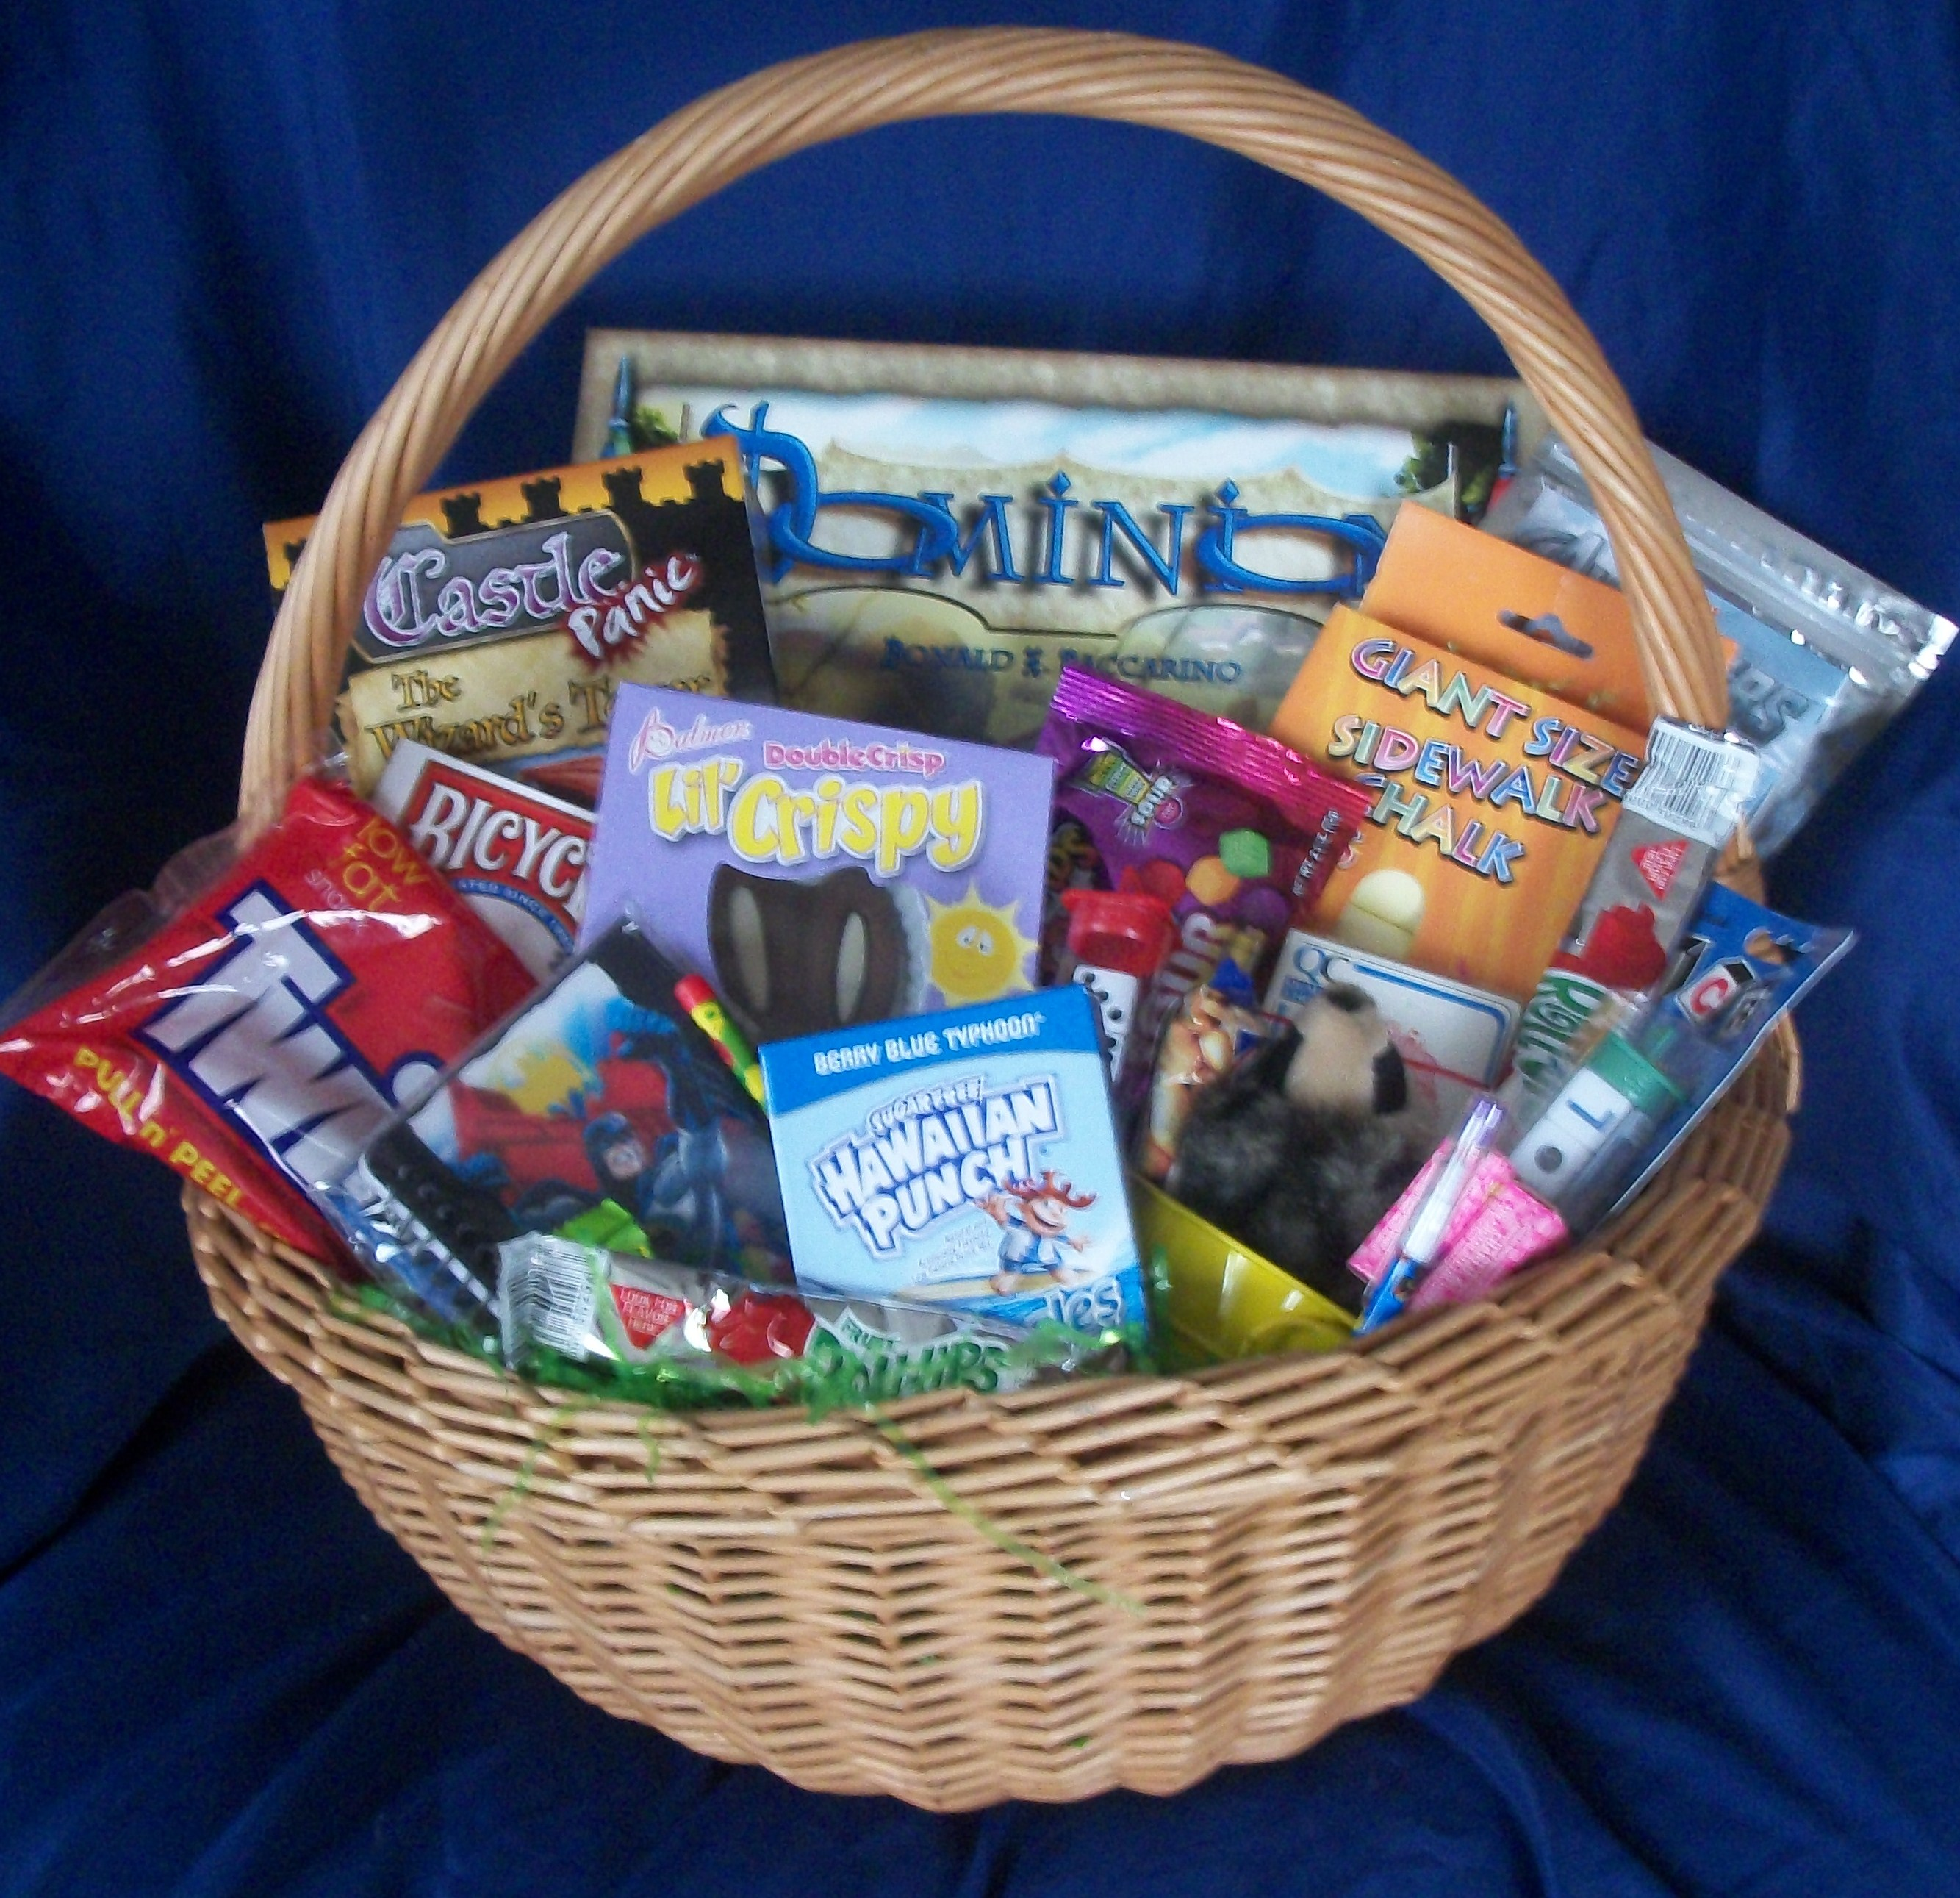 Game gift baskets all about fun and games fun and games gift basket negle Gallery